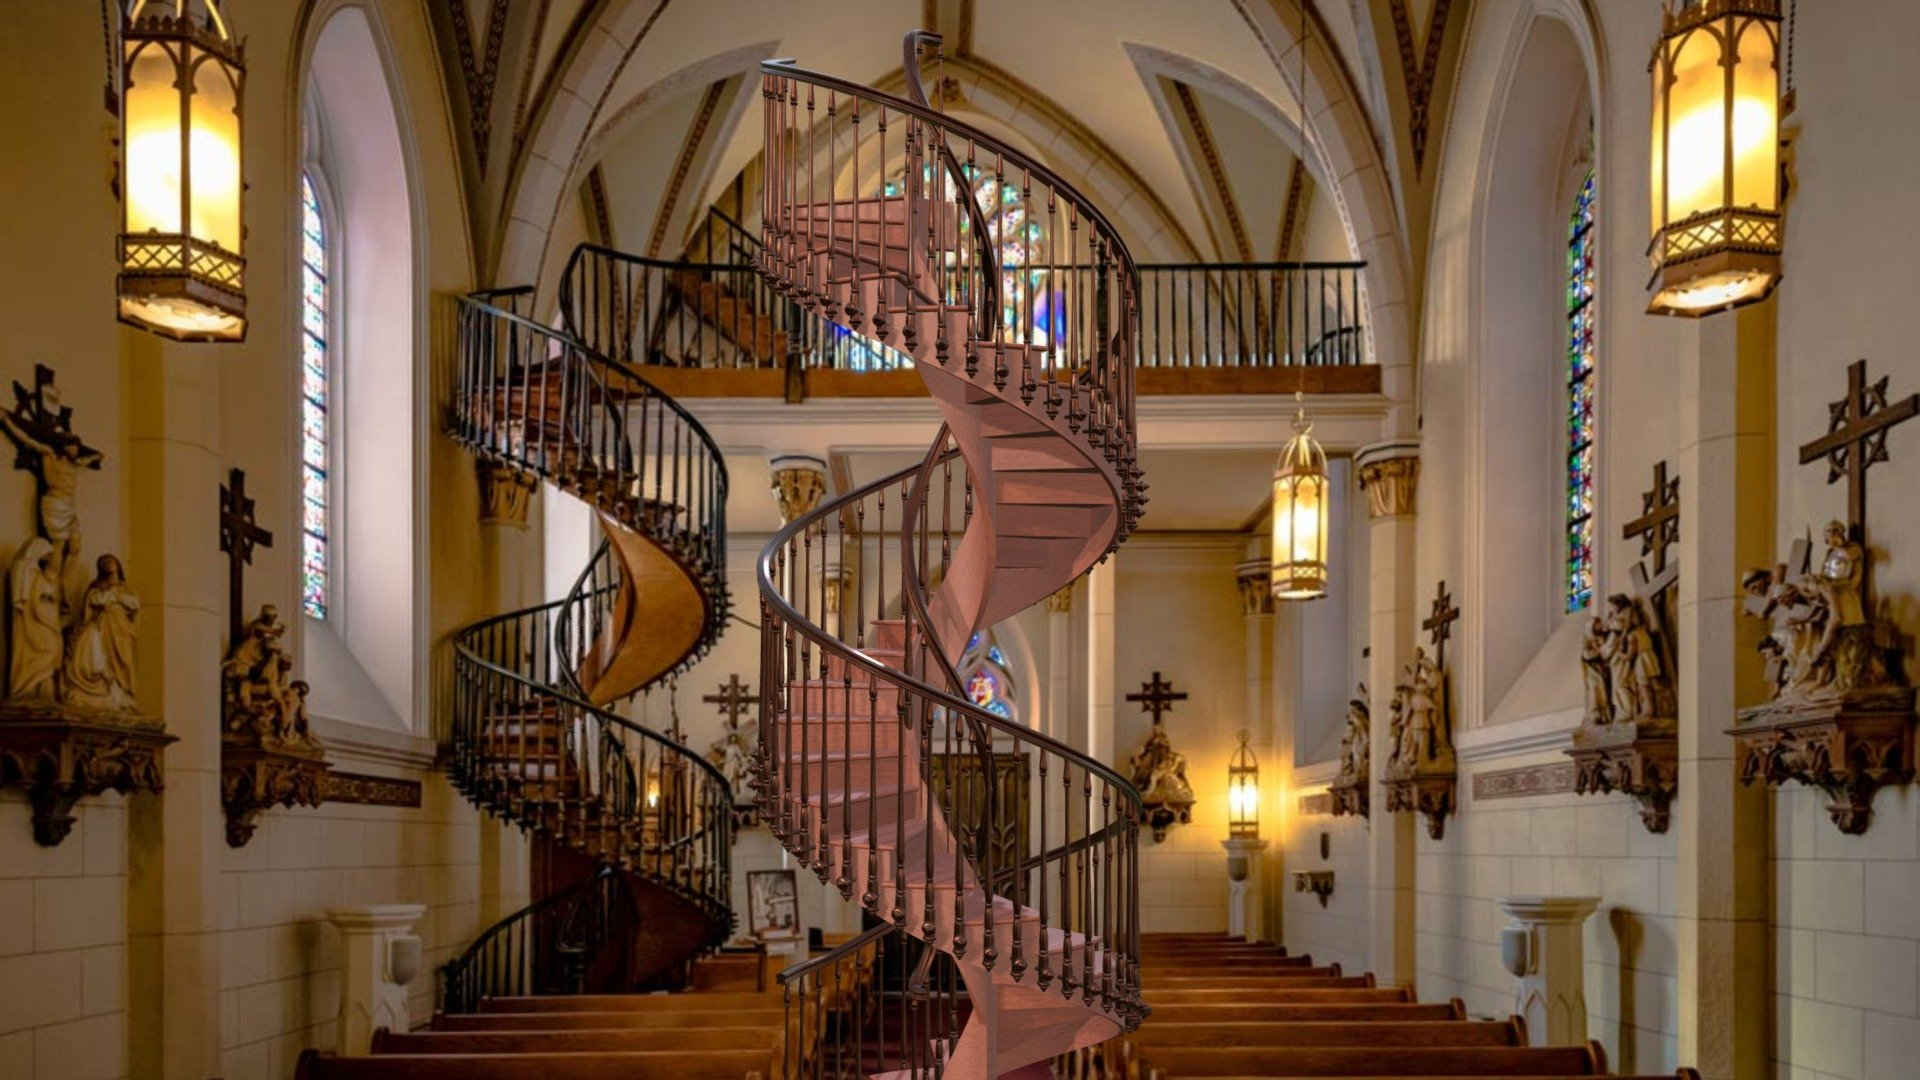 Loretto Chapel Staircase 3d Model By Staircon By Elecosoft Staircon Examples 3dexport 489efe2 Sketchfab